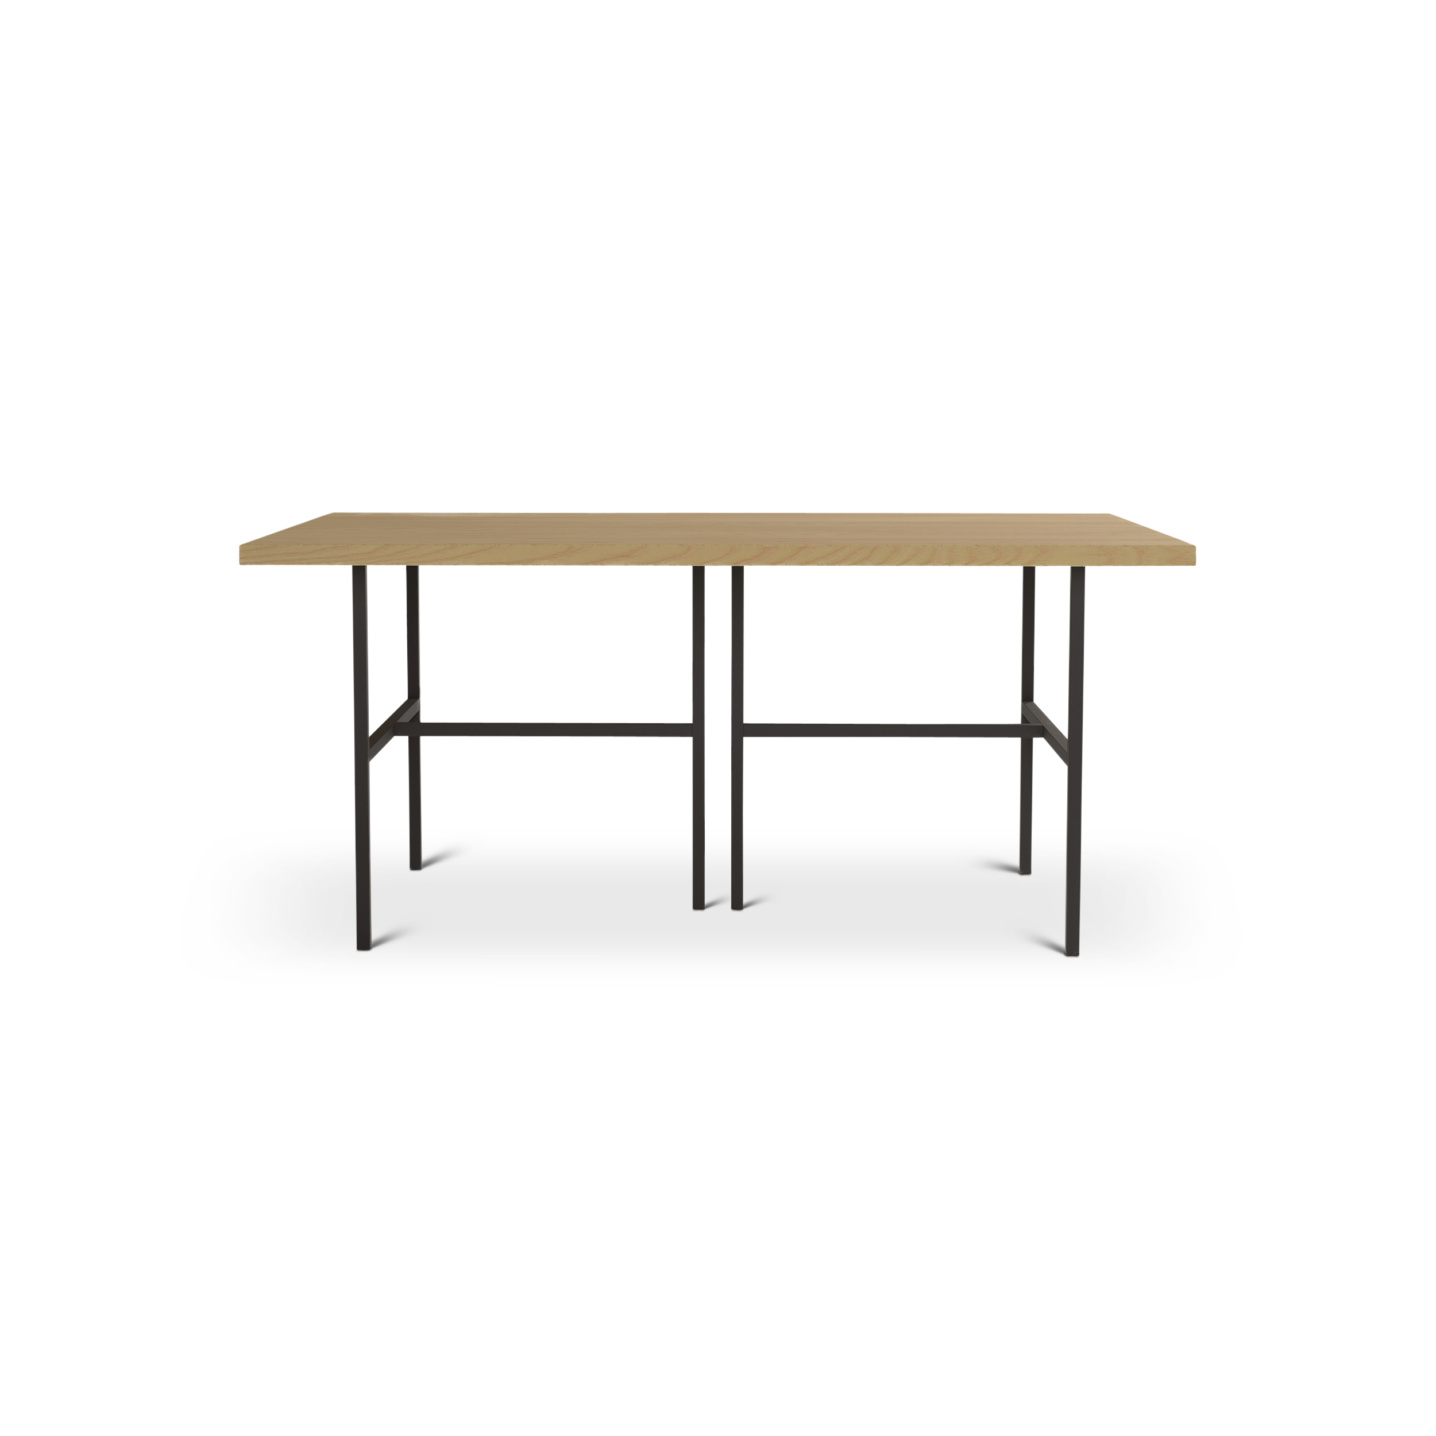 Solid Ash dining room table with matte black legs